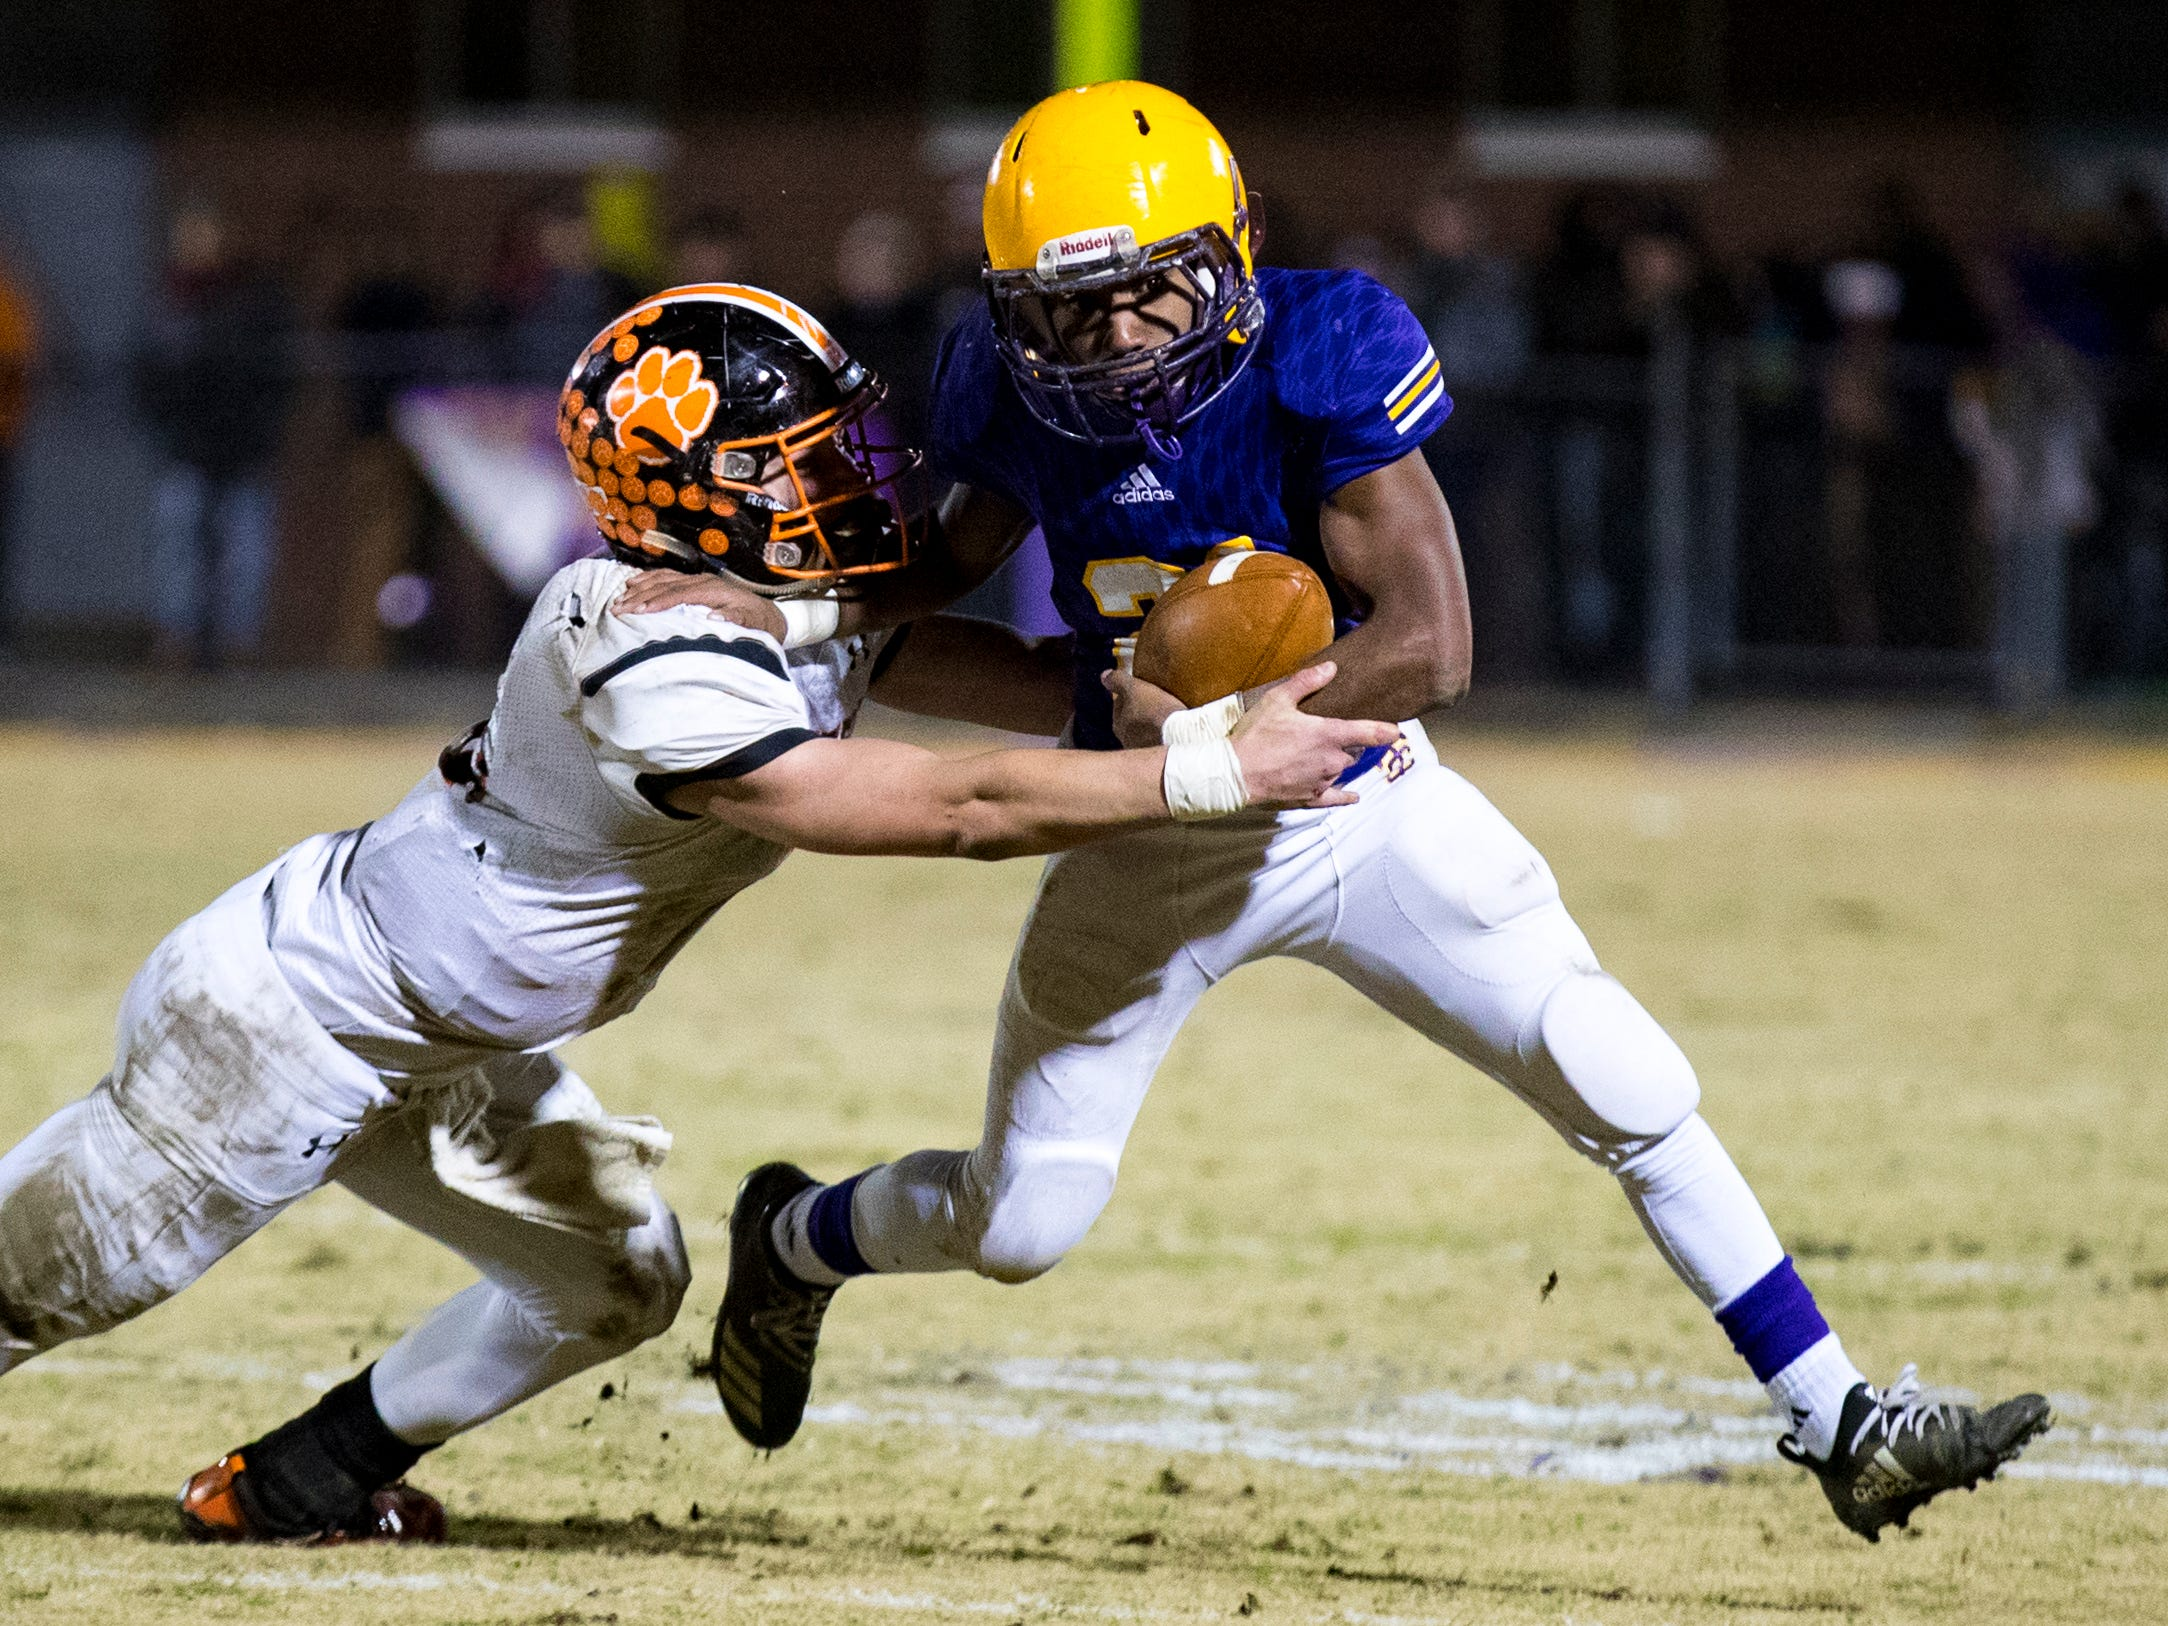 Trousdale County's Dyson Satterfield (21) sheds a tackle during Trousdale County's game against Meigs County at Jim Satterfield Stadium in Hartsville on Friday, Nov. 23, 2018.